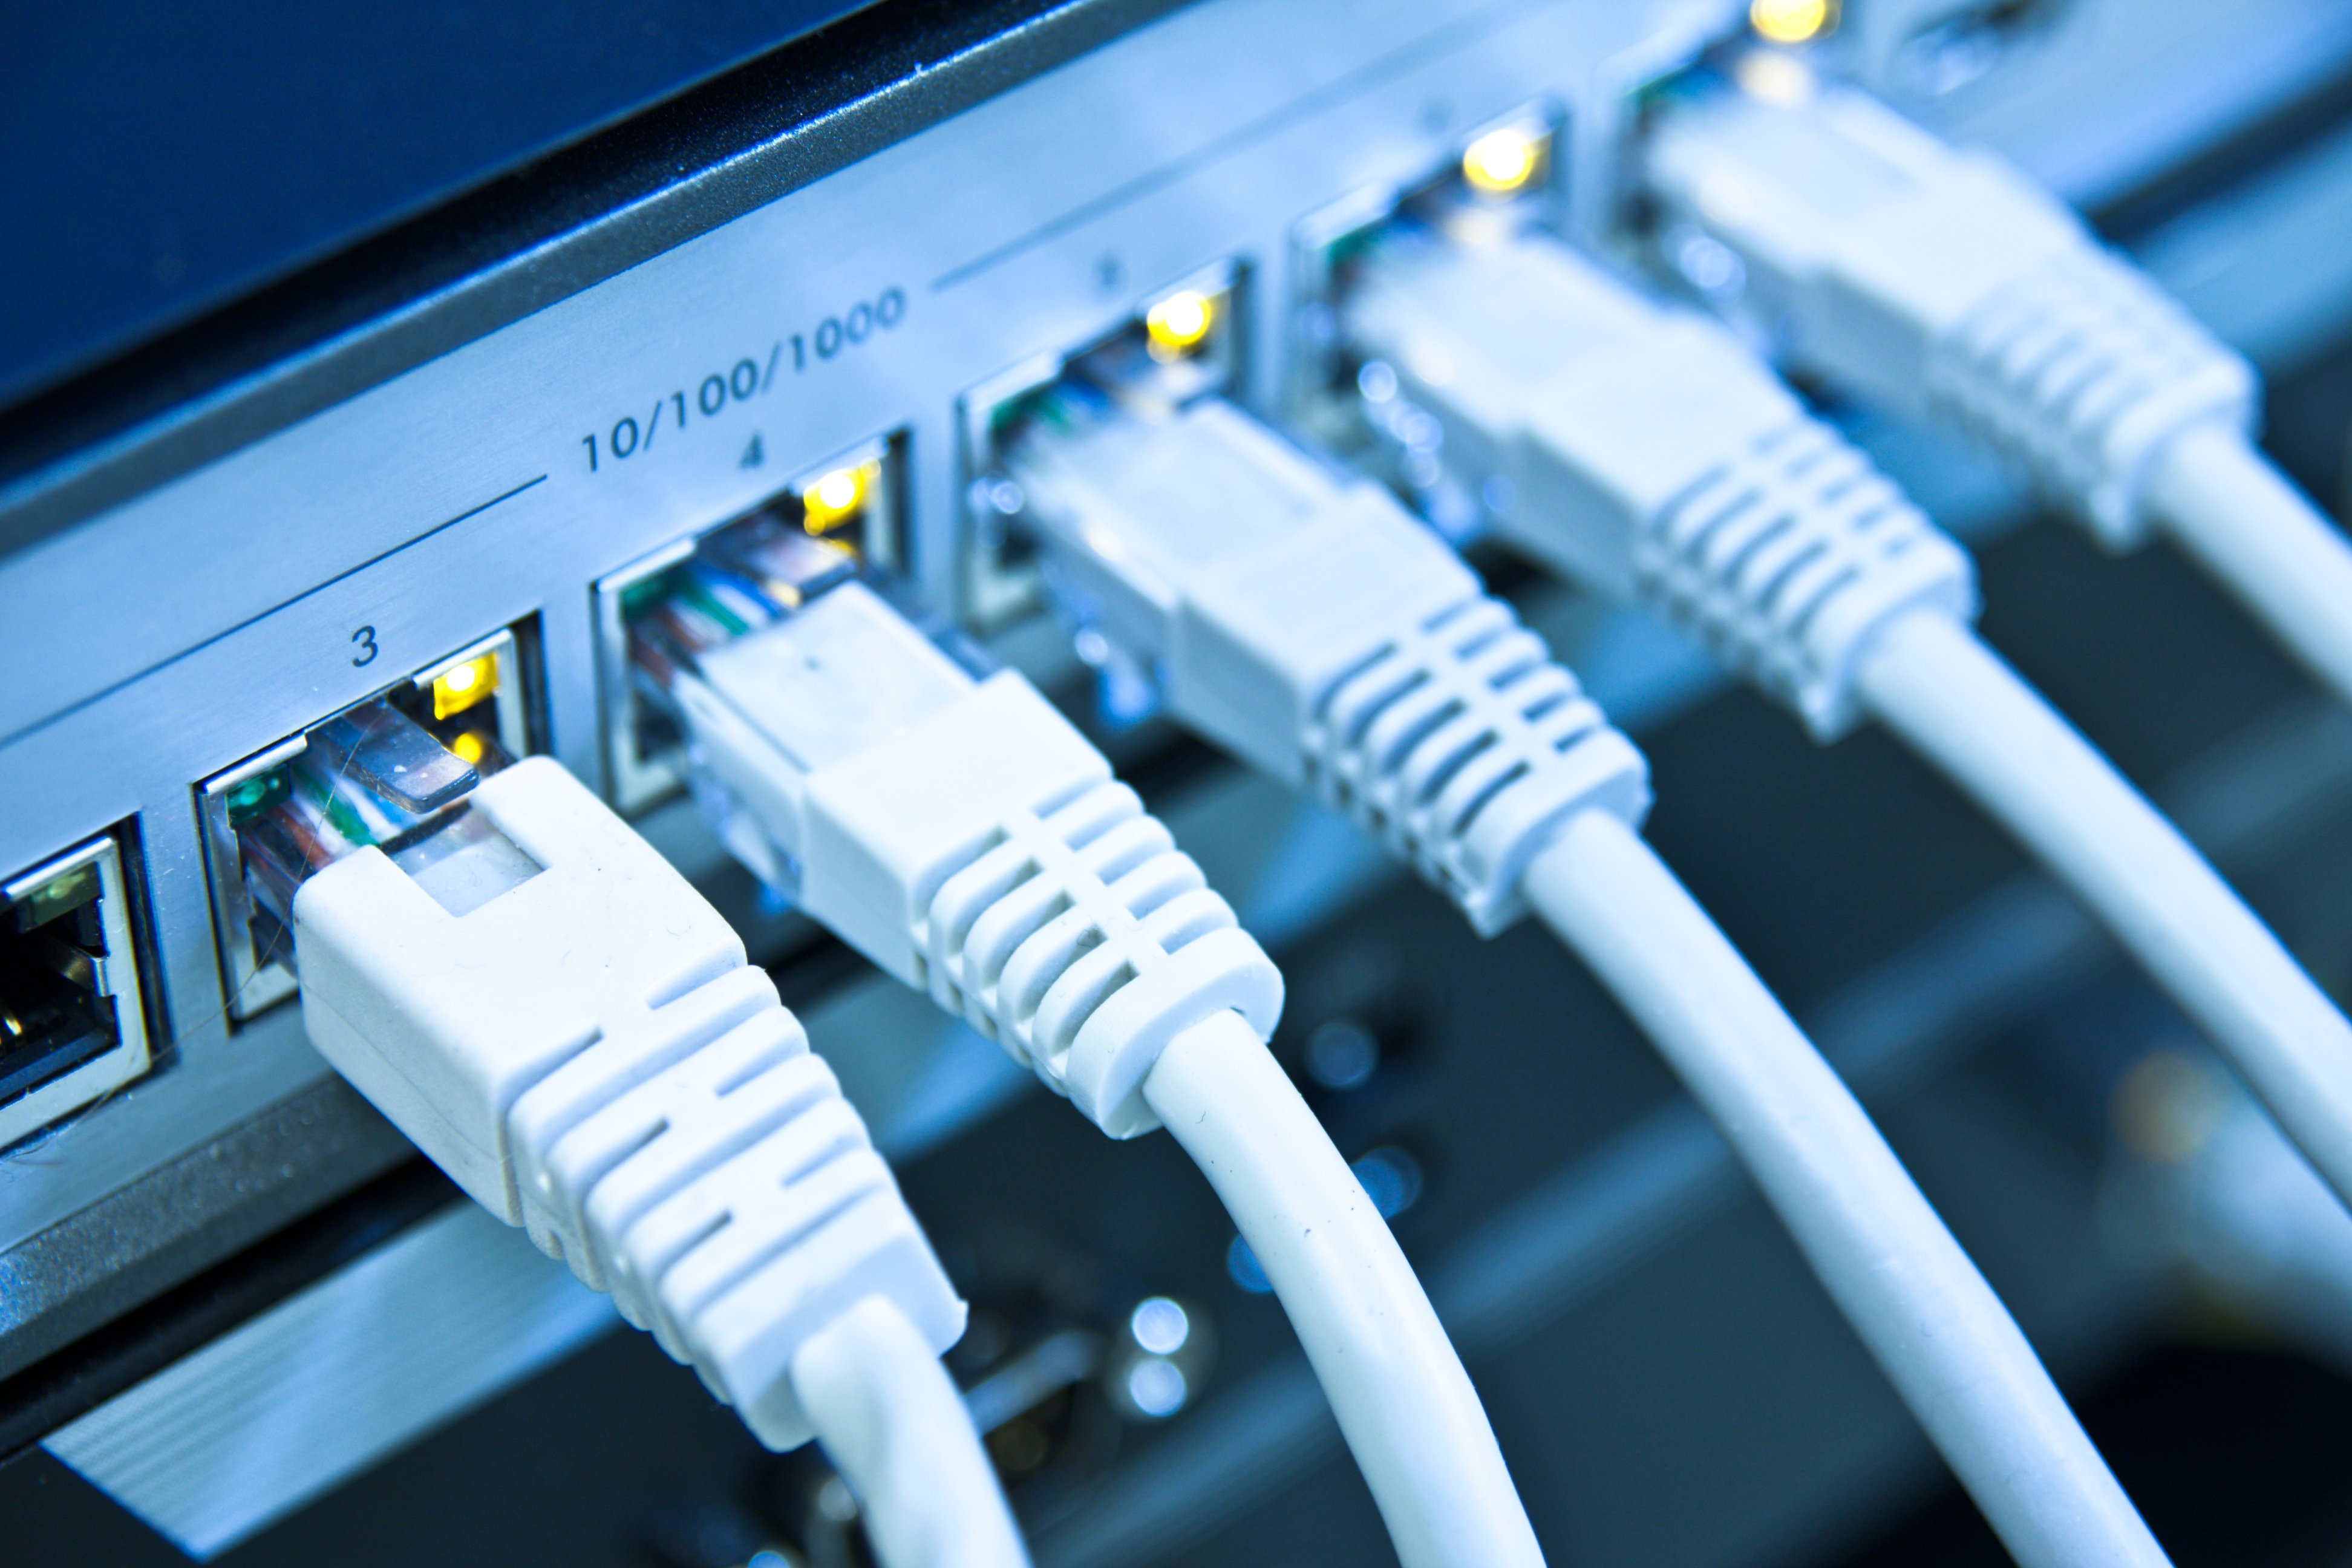 Buying a Network Switch: 5 Things to Consider